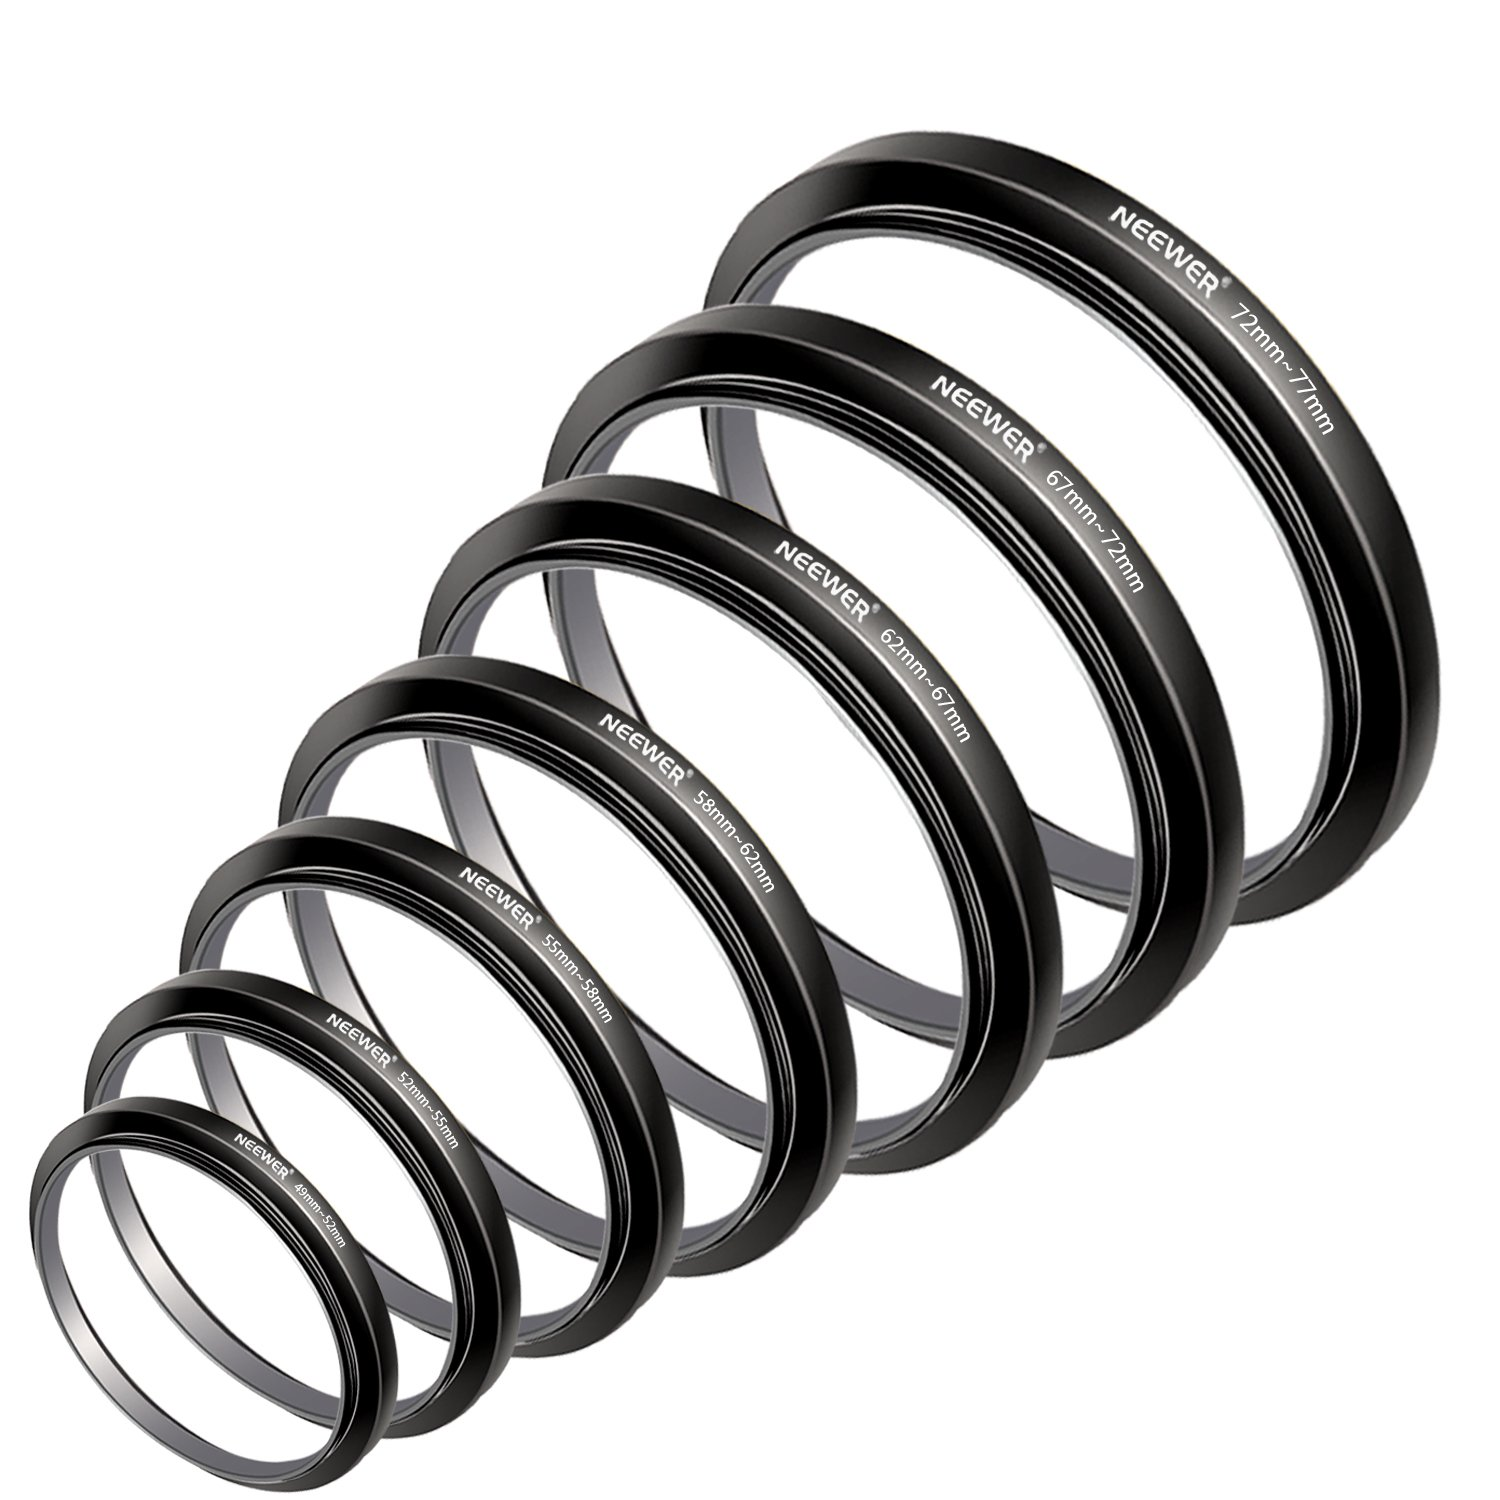 Neewer 7pcs 49mm-77mm Filter Step Up Rings Stepping Adapter Set (49-52-55-58-62-67-72-77mm) by Neewer